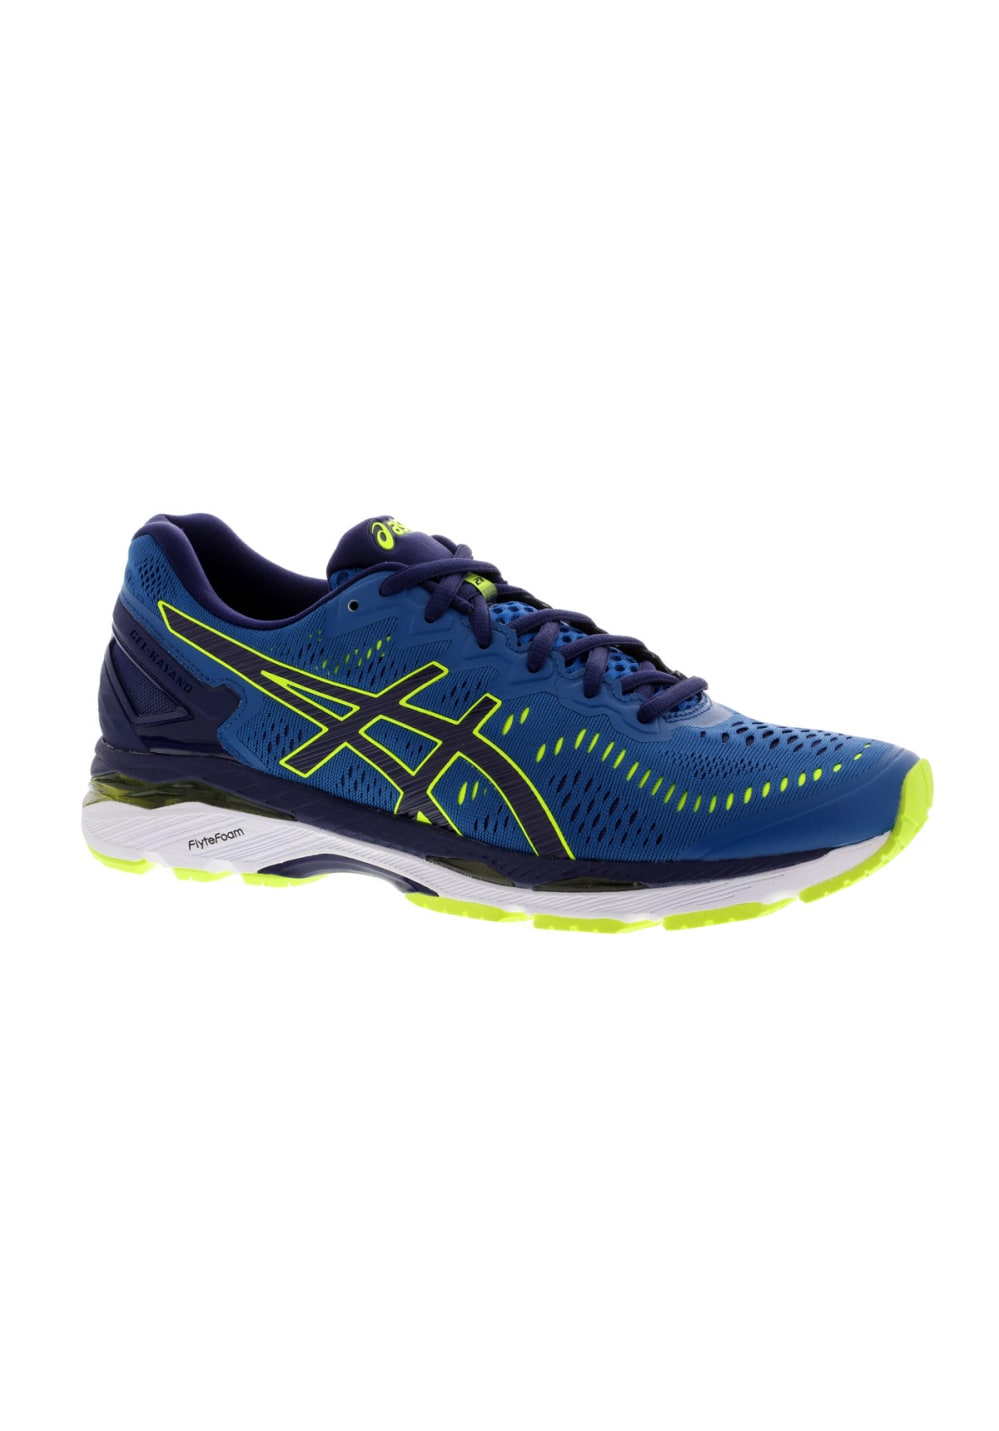 Men Shoes Blue Running Asics Gel Kayano 23 For m8nN0wv